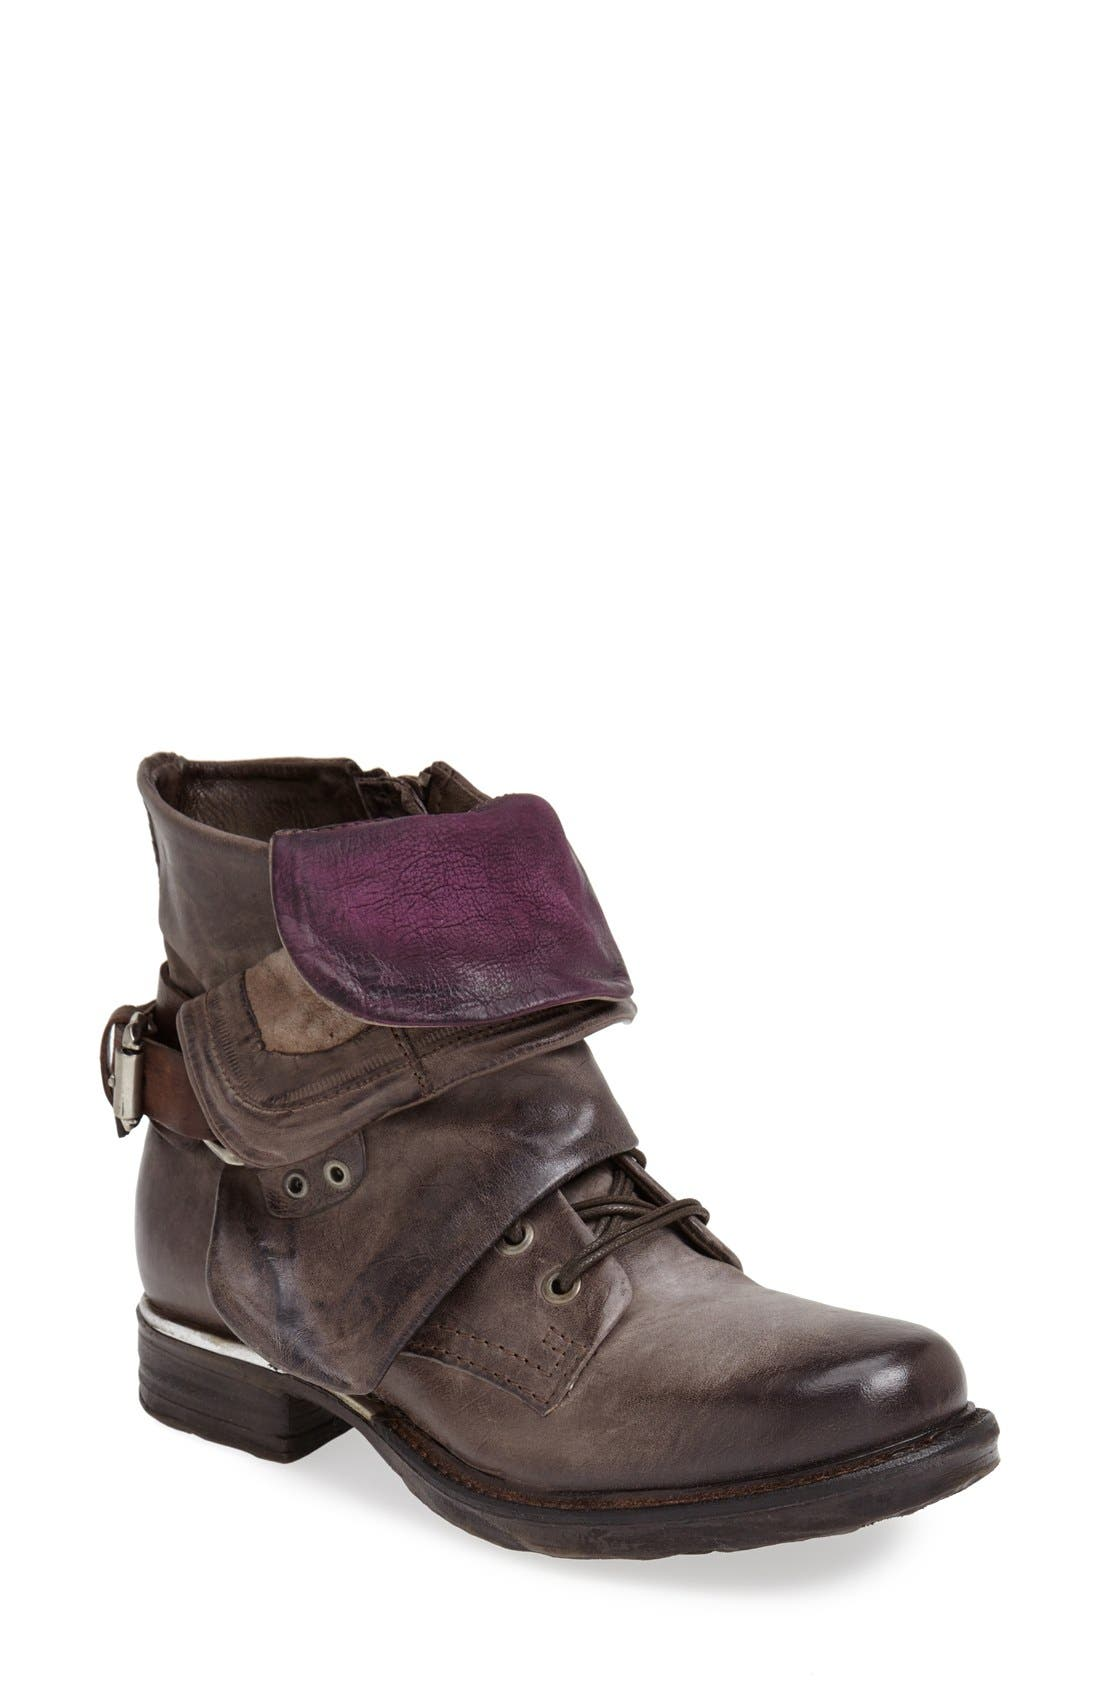 A.S. 98 'Simon' Front Cuff Leather Boot,                             Main thumbnail 1, color,                             060